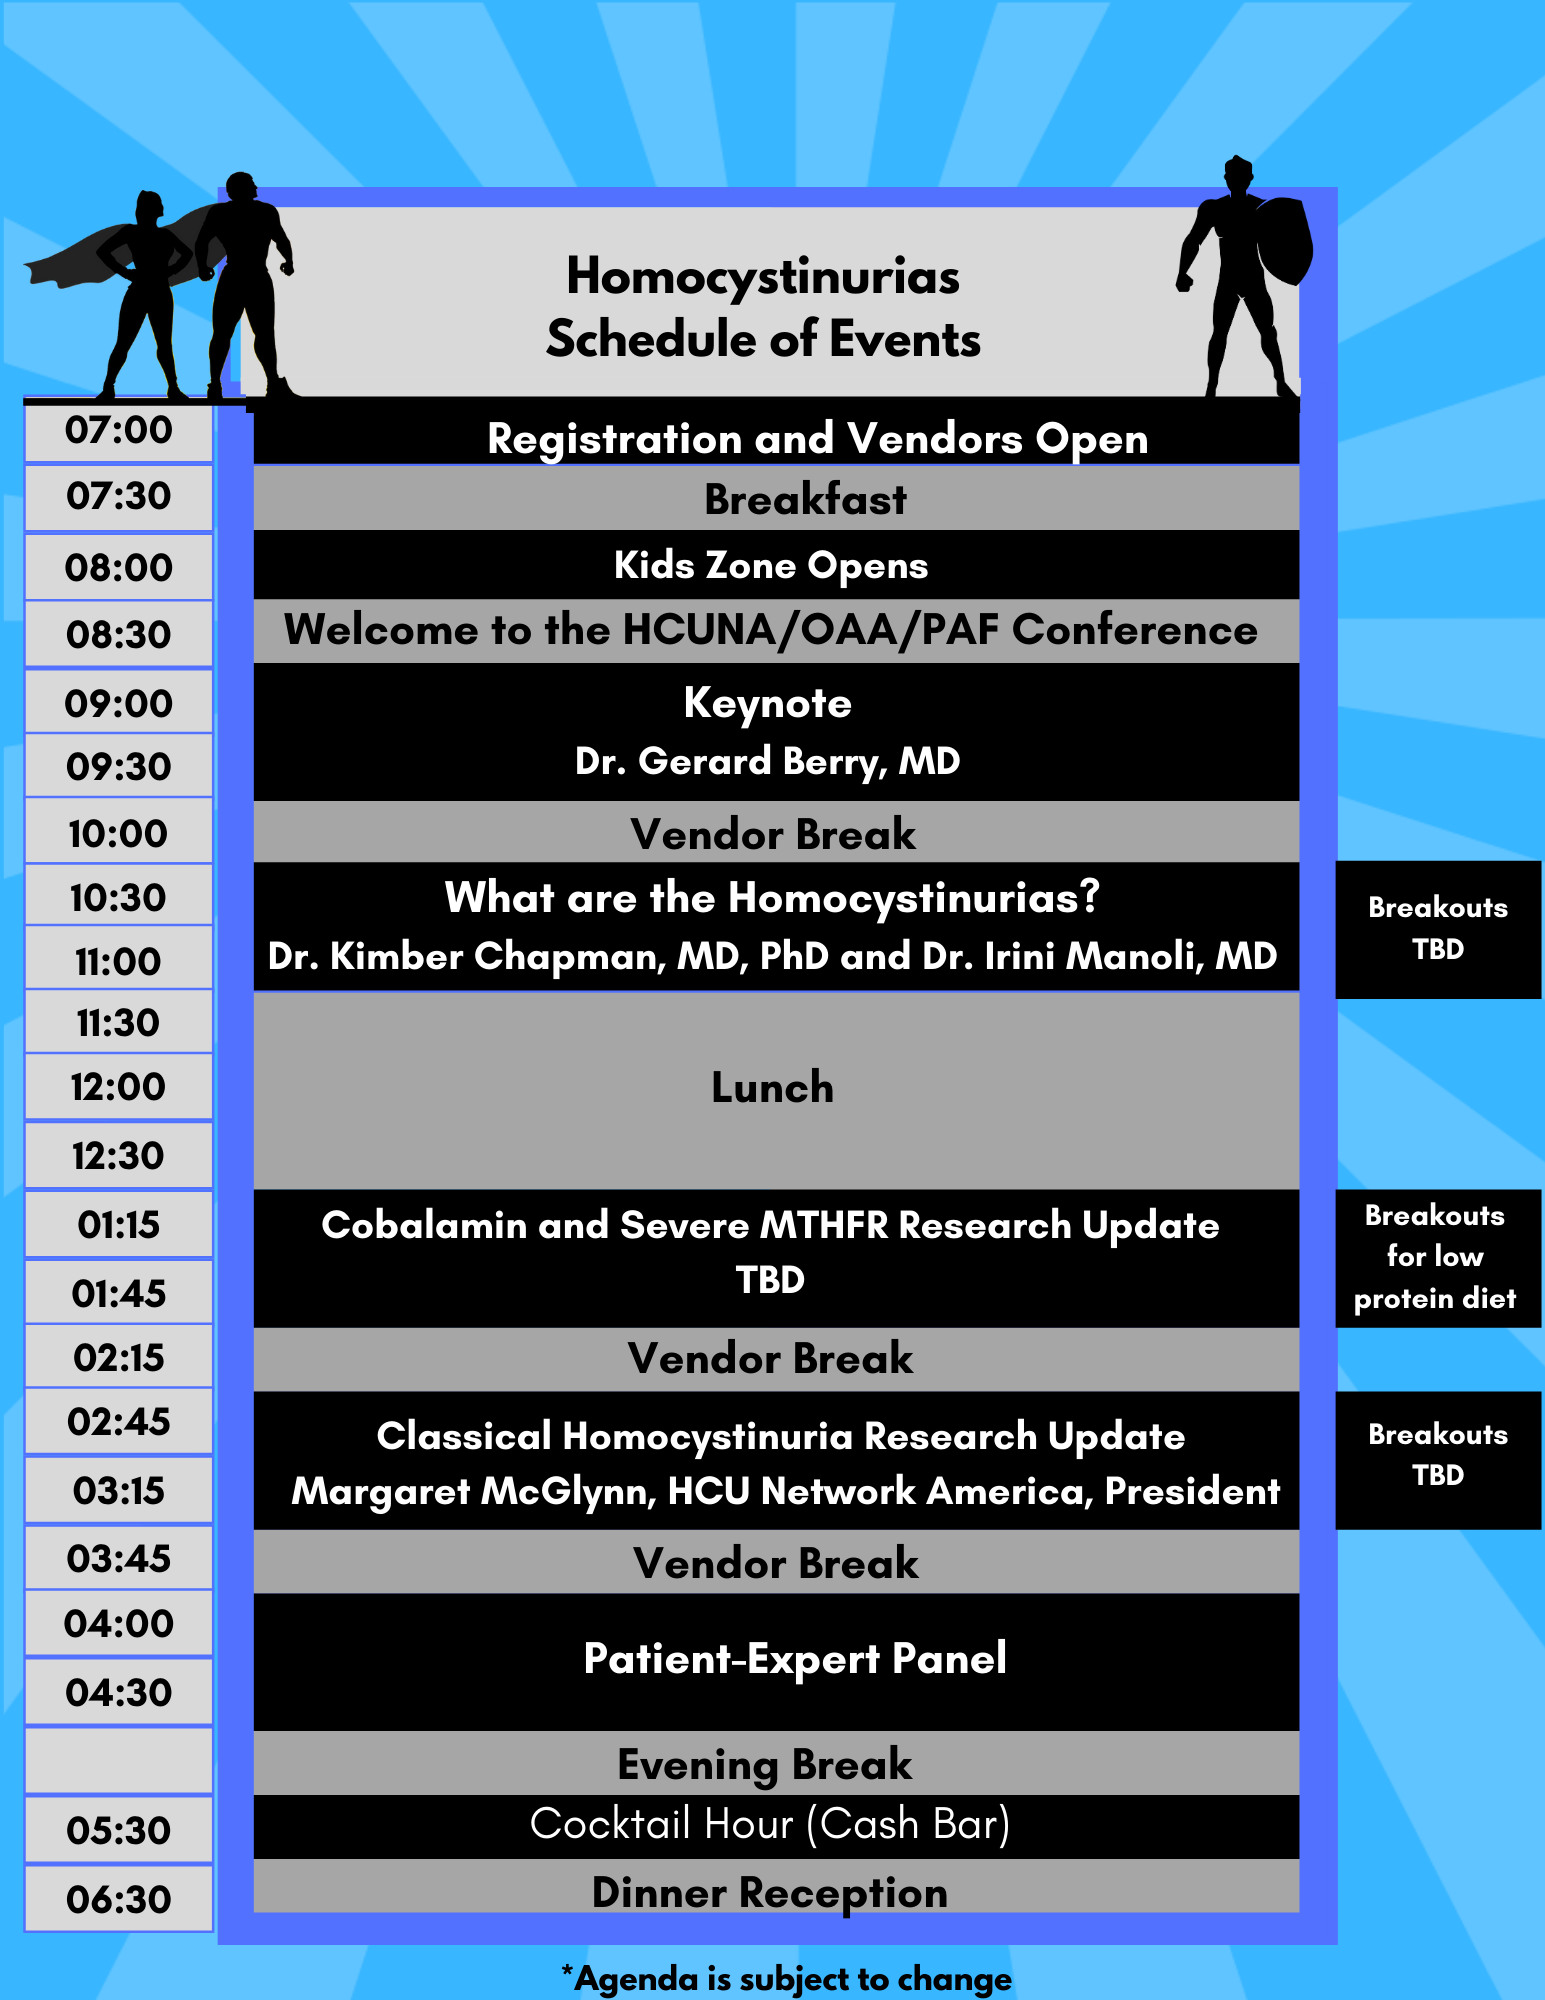 Homocystinuria Schedule of Events 2021 Day 1